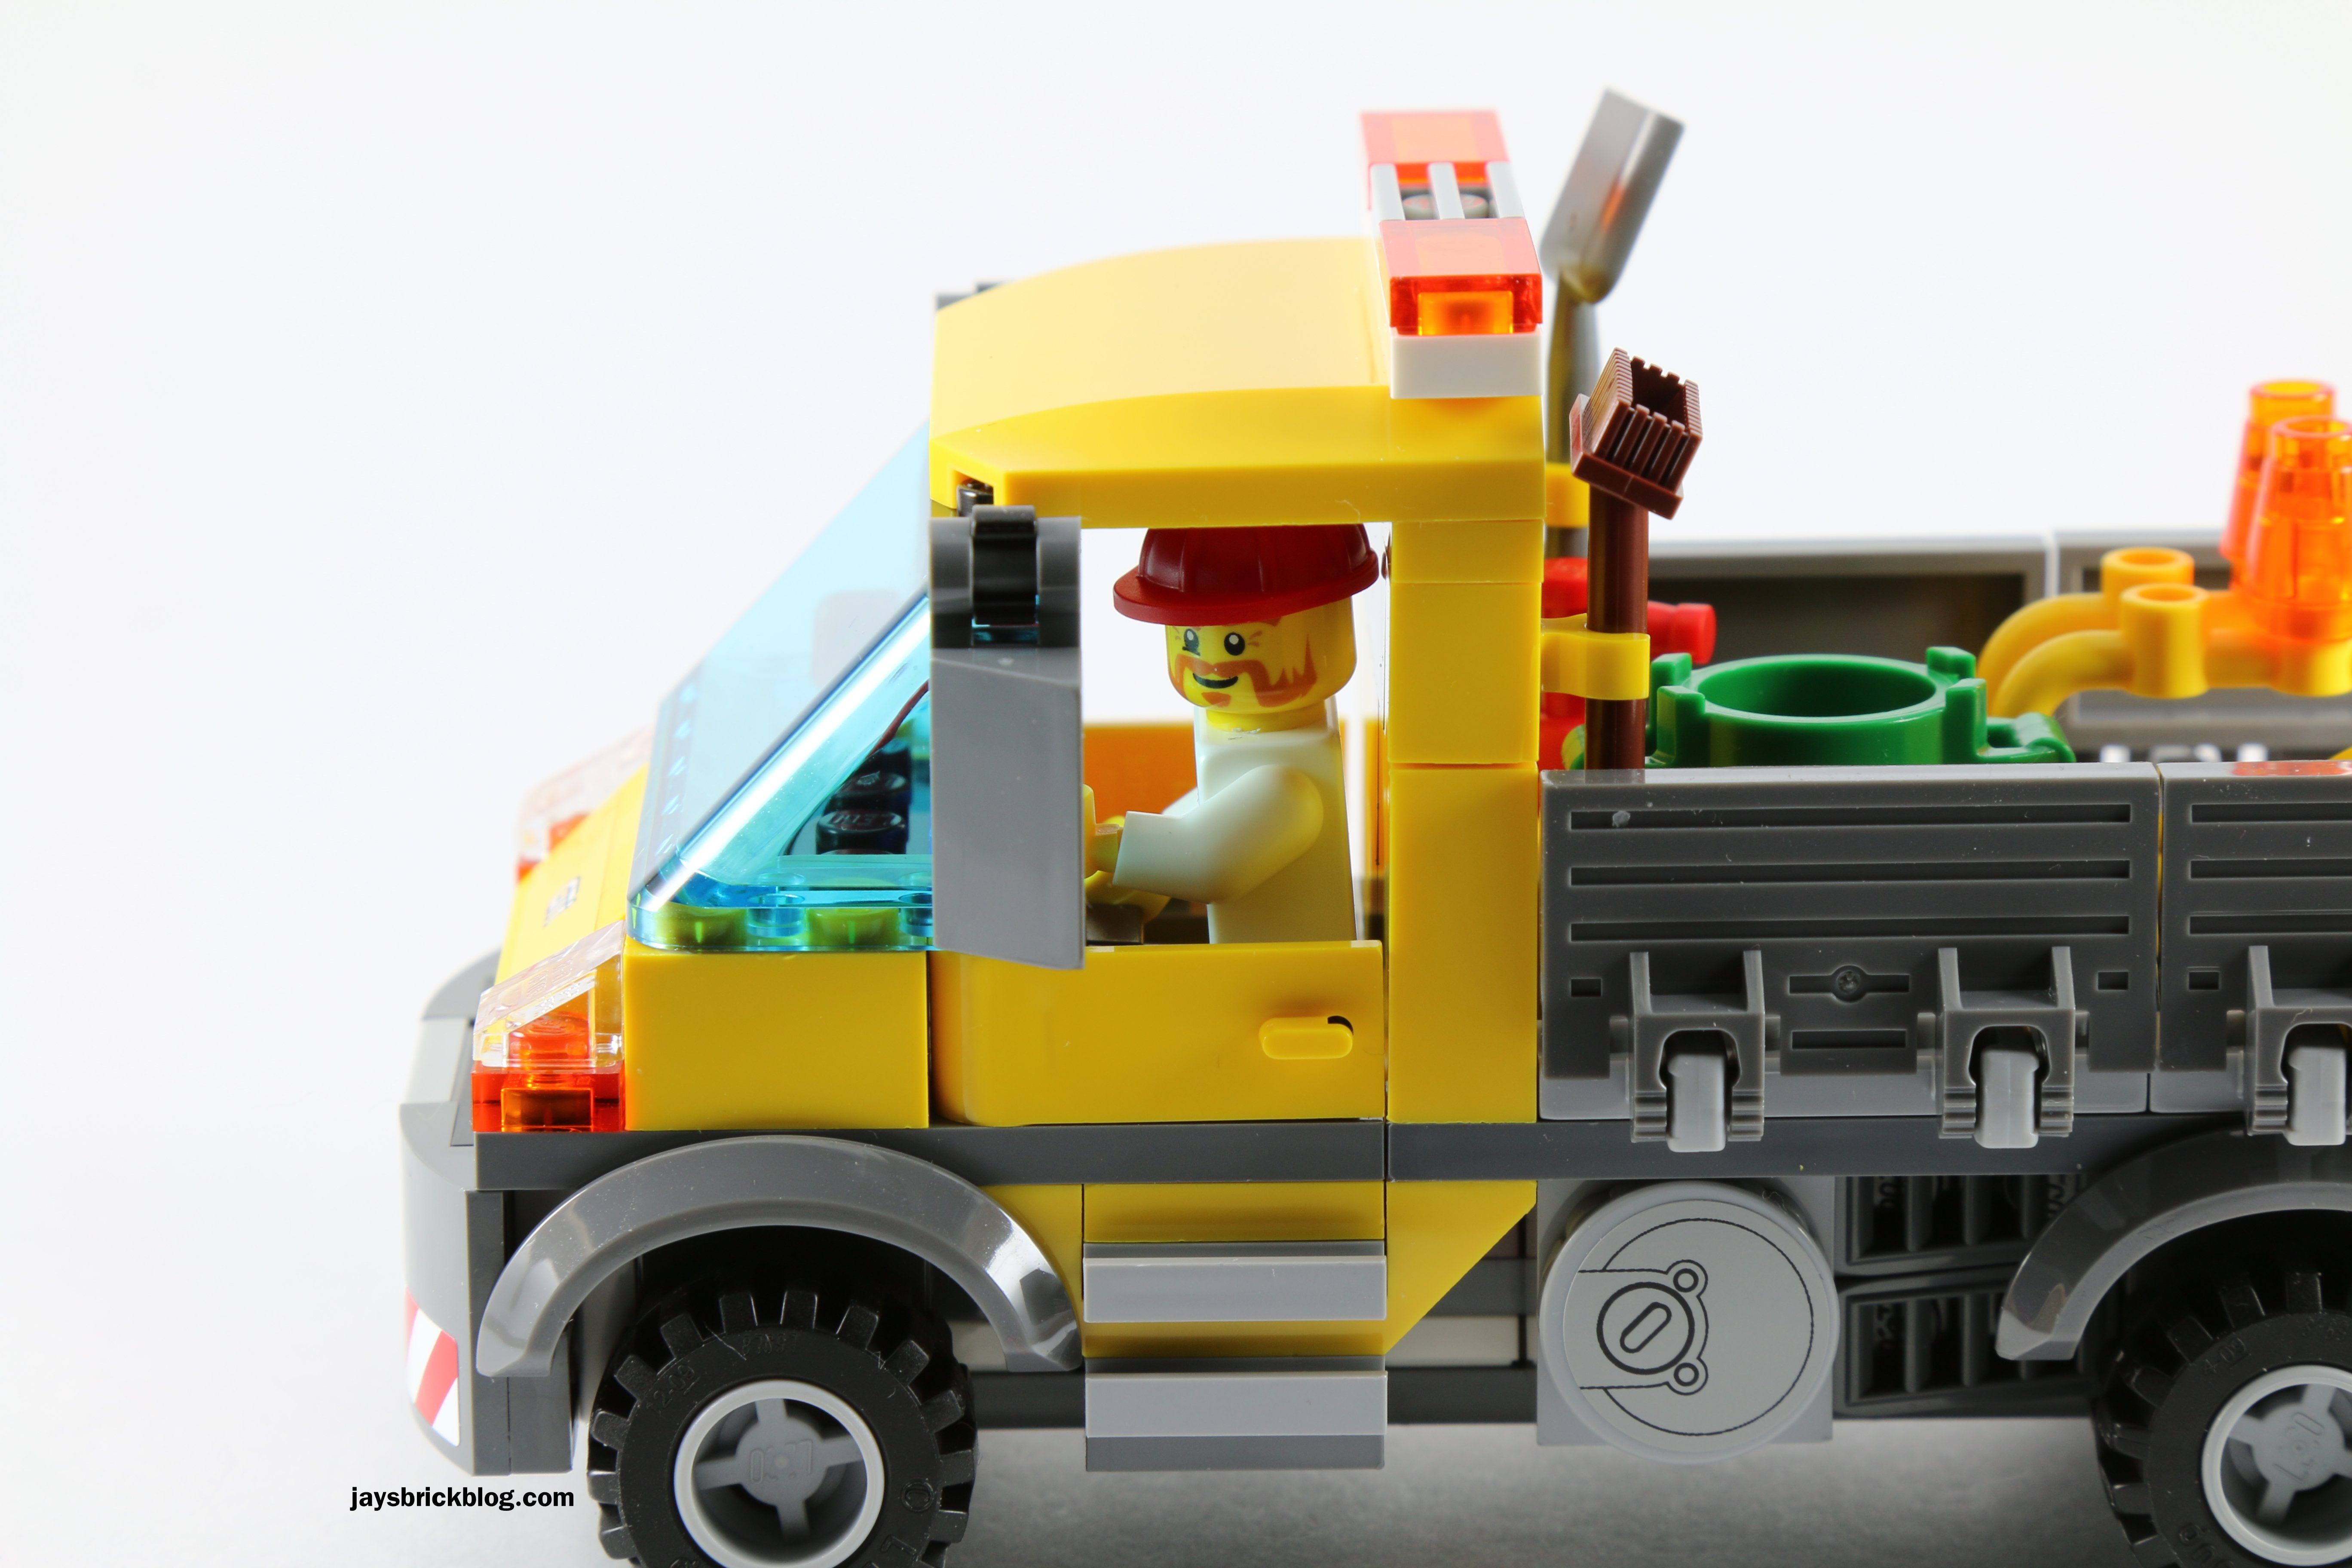 Review: LEGO City 60073 - Service Truck